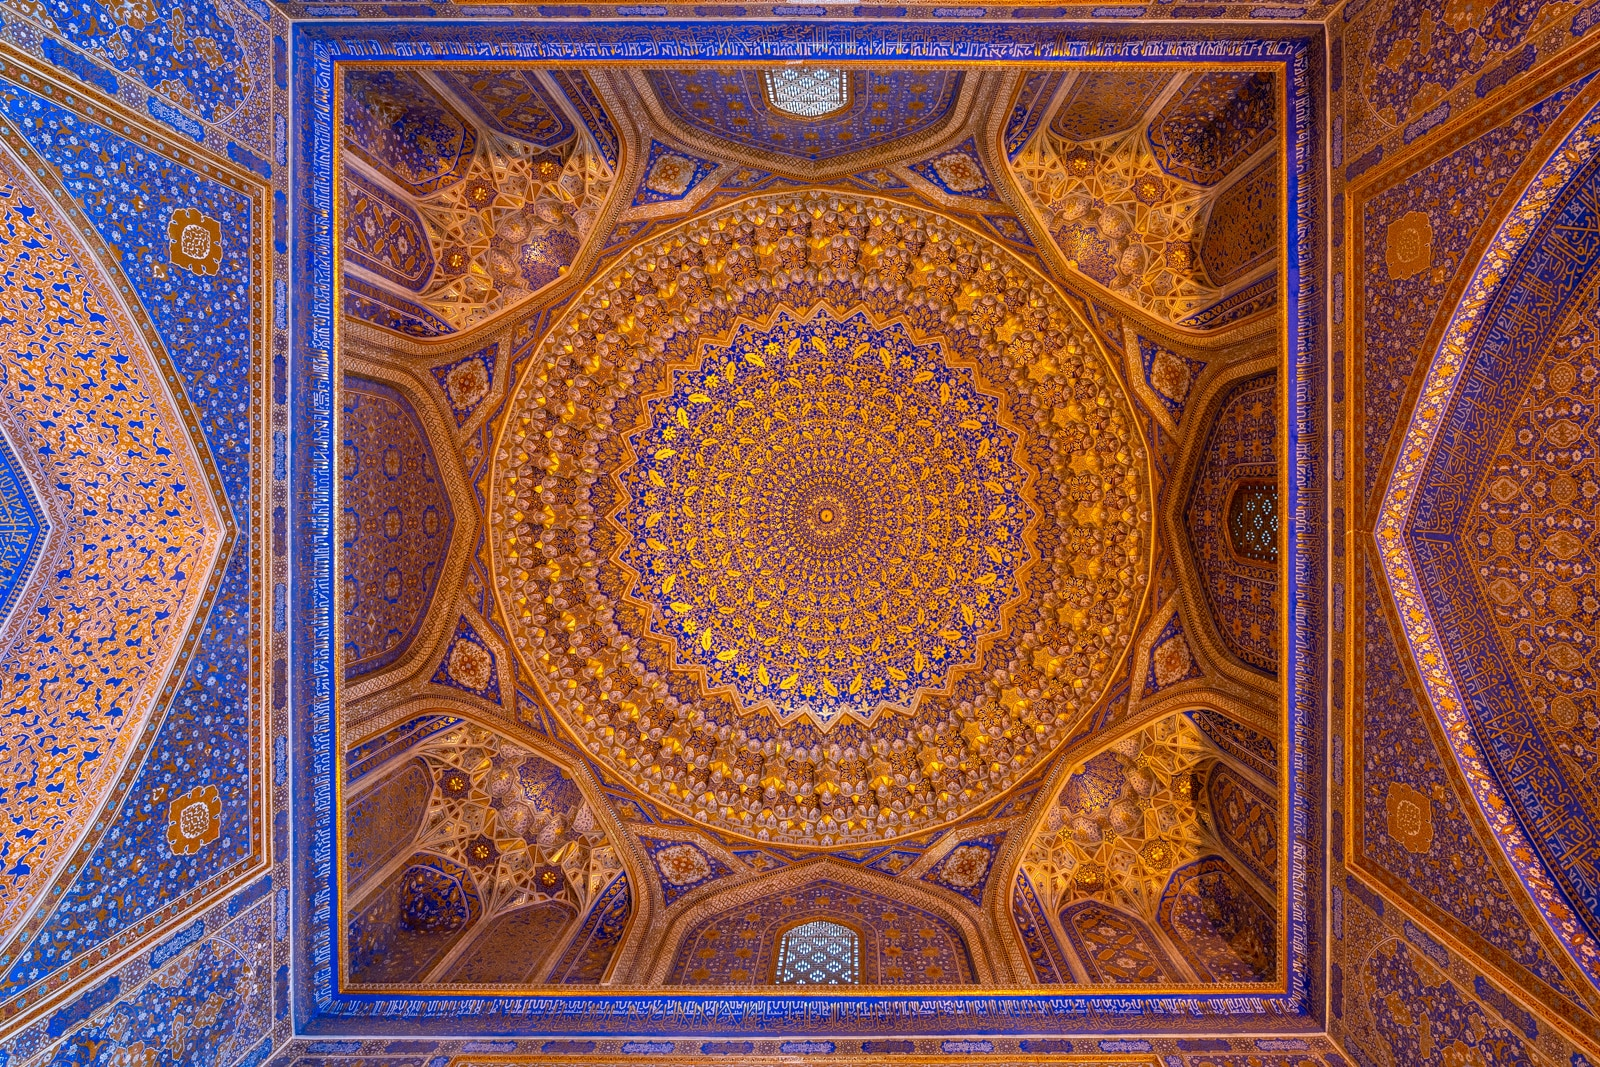 Golden ceiling of the Tilla-Kari Madrassa in the Registan in Samarkand, Uzbekistan